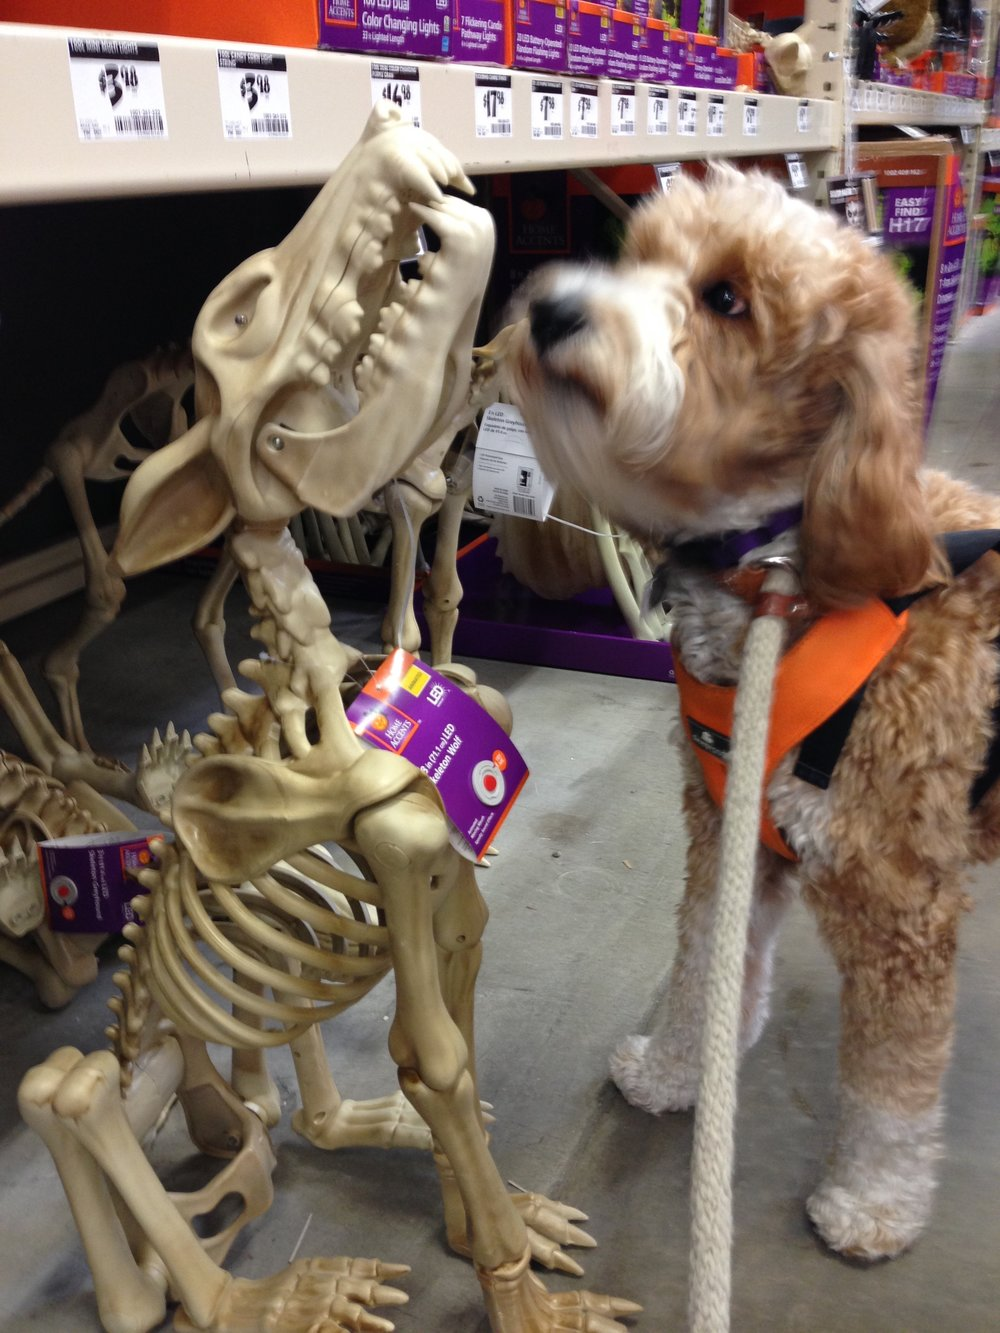 Bernie was fascinated by this skeleton wolf. I referred to this creature as the haunted hound. Even though a few kids kept setting off the motion sensor on this skeleton hound, Bernie never barked.